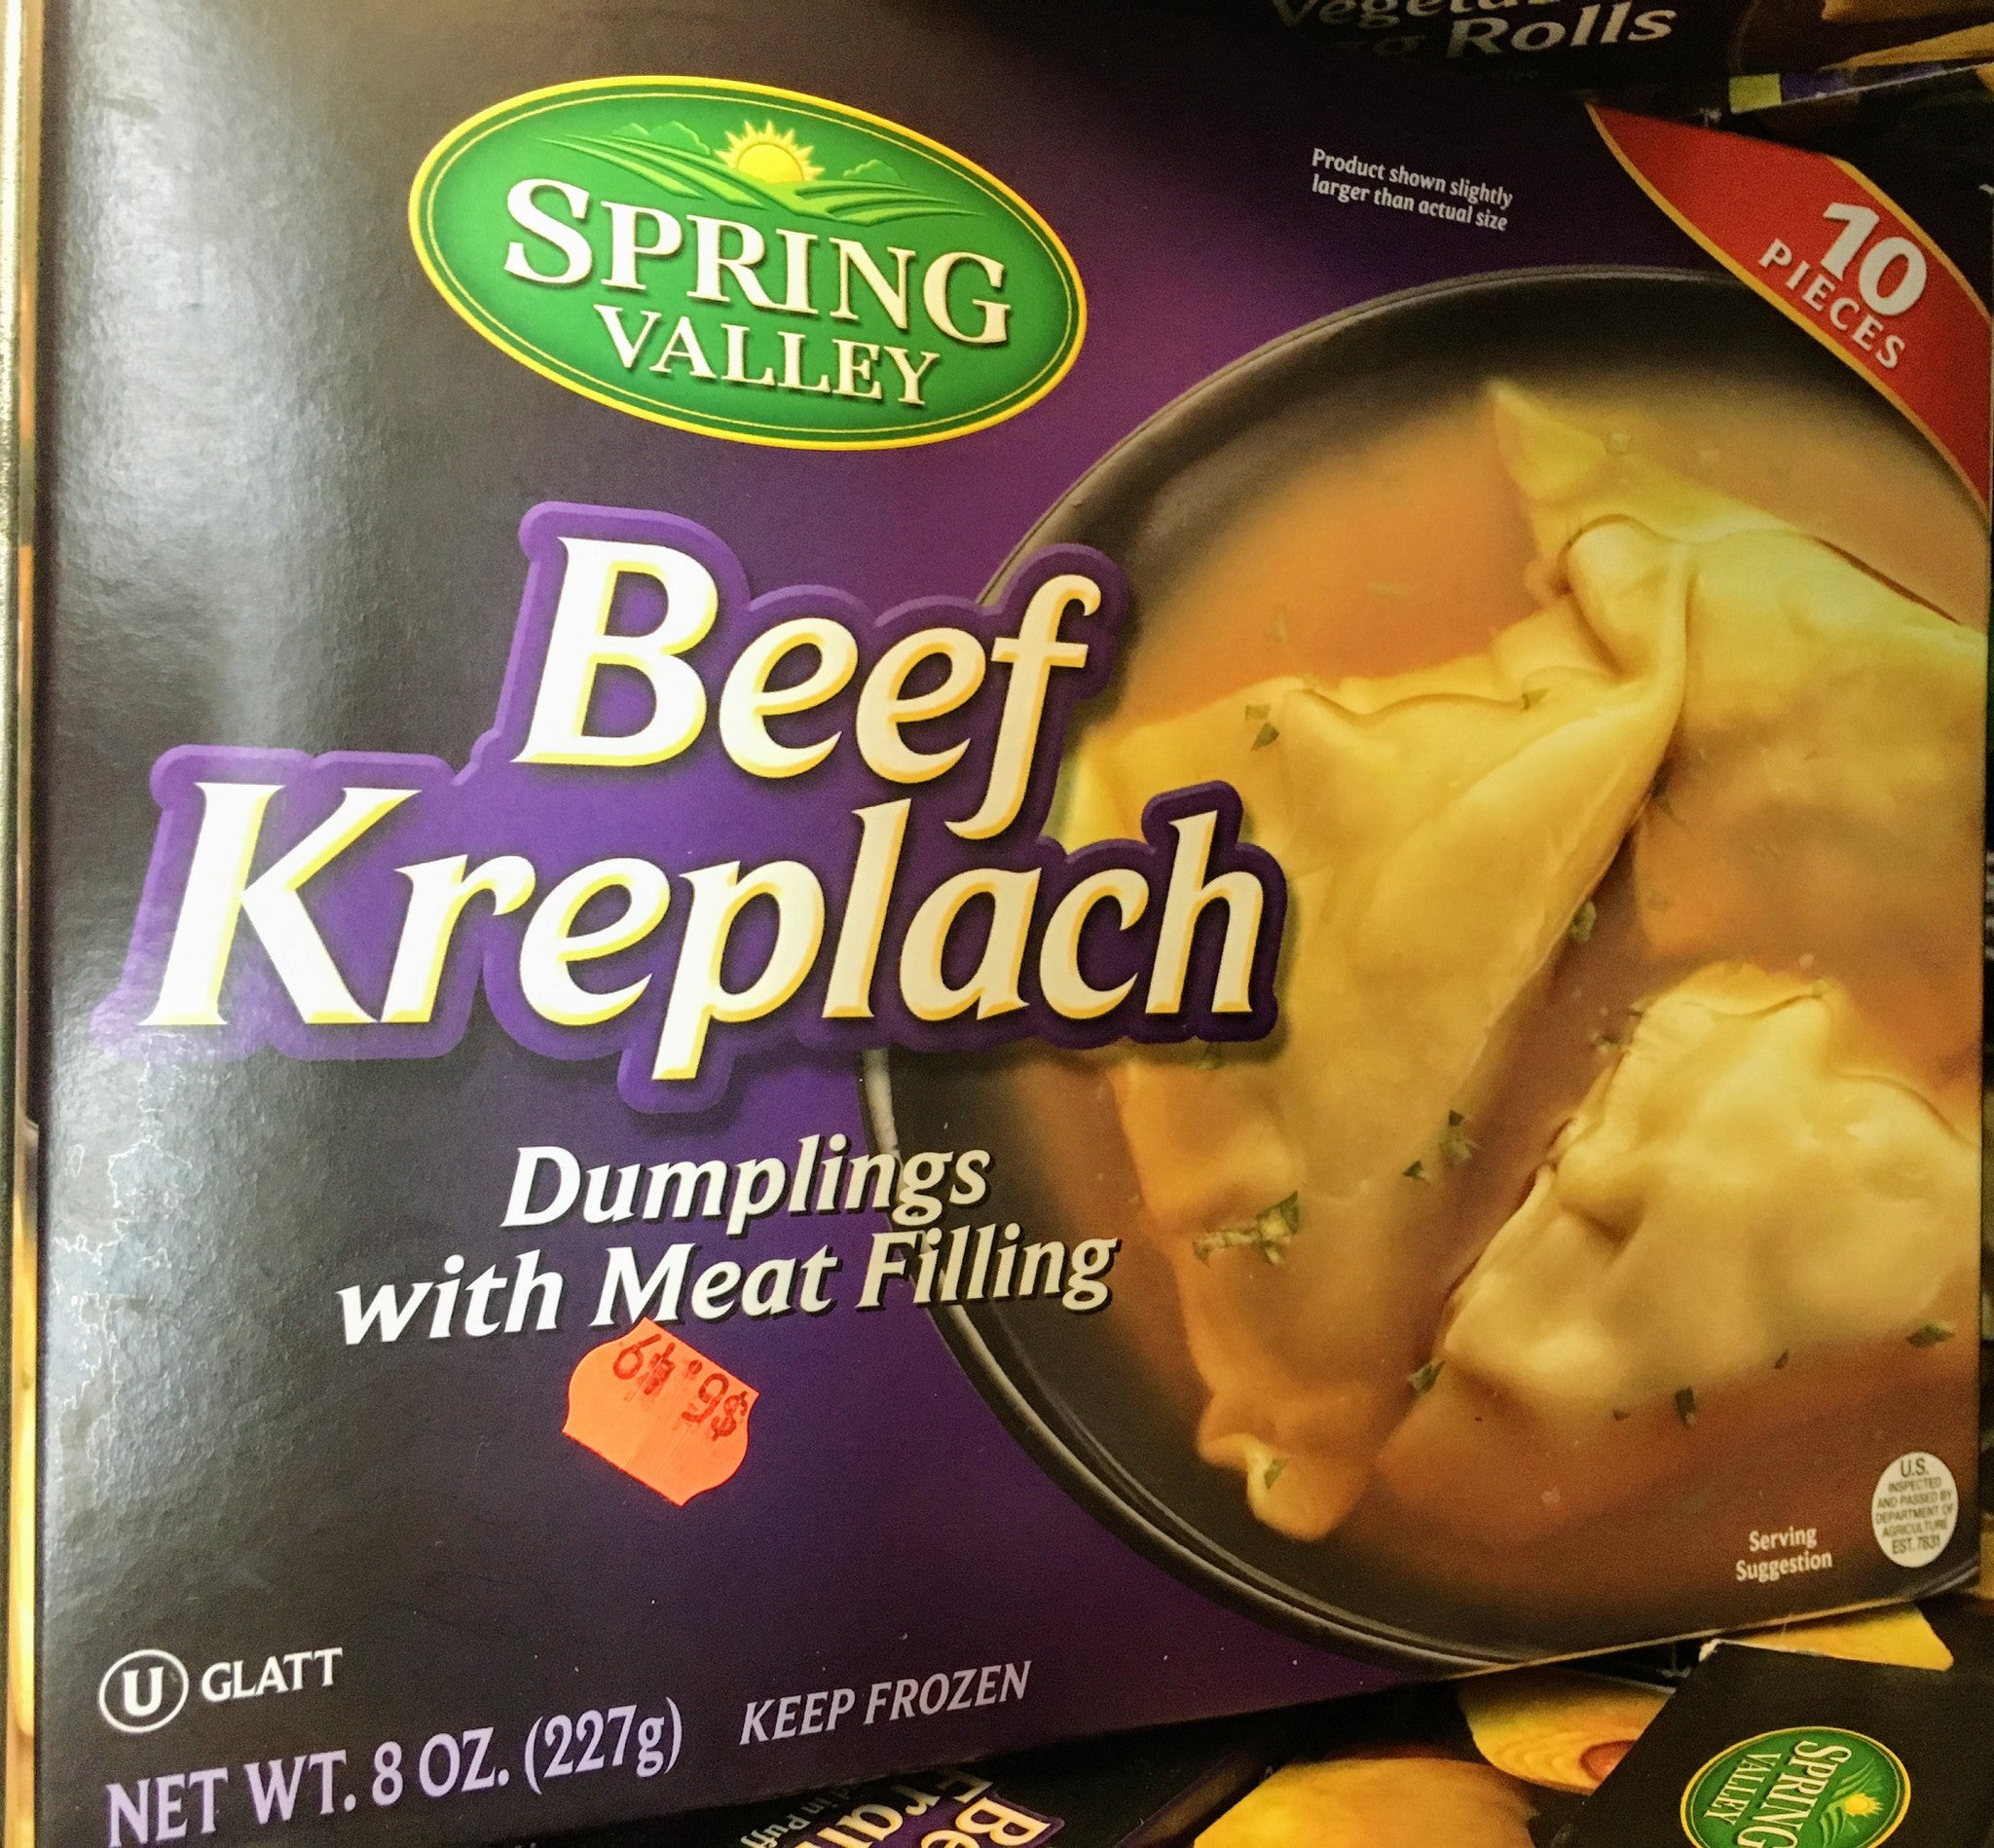 Spring Valley Beef Kreplach